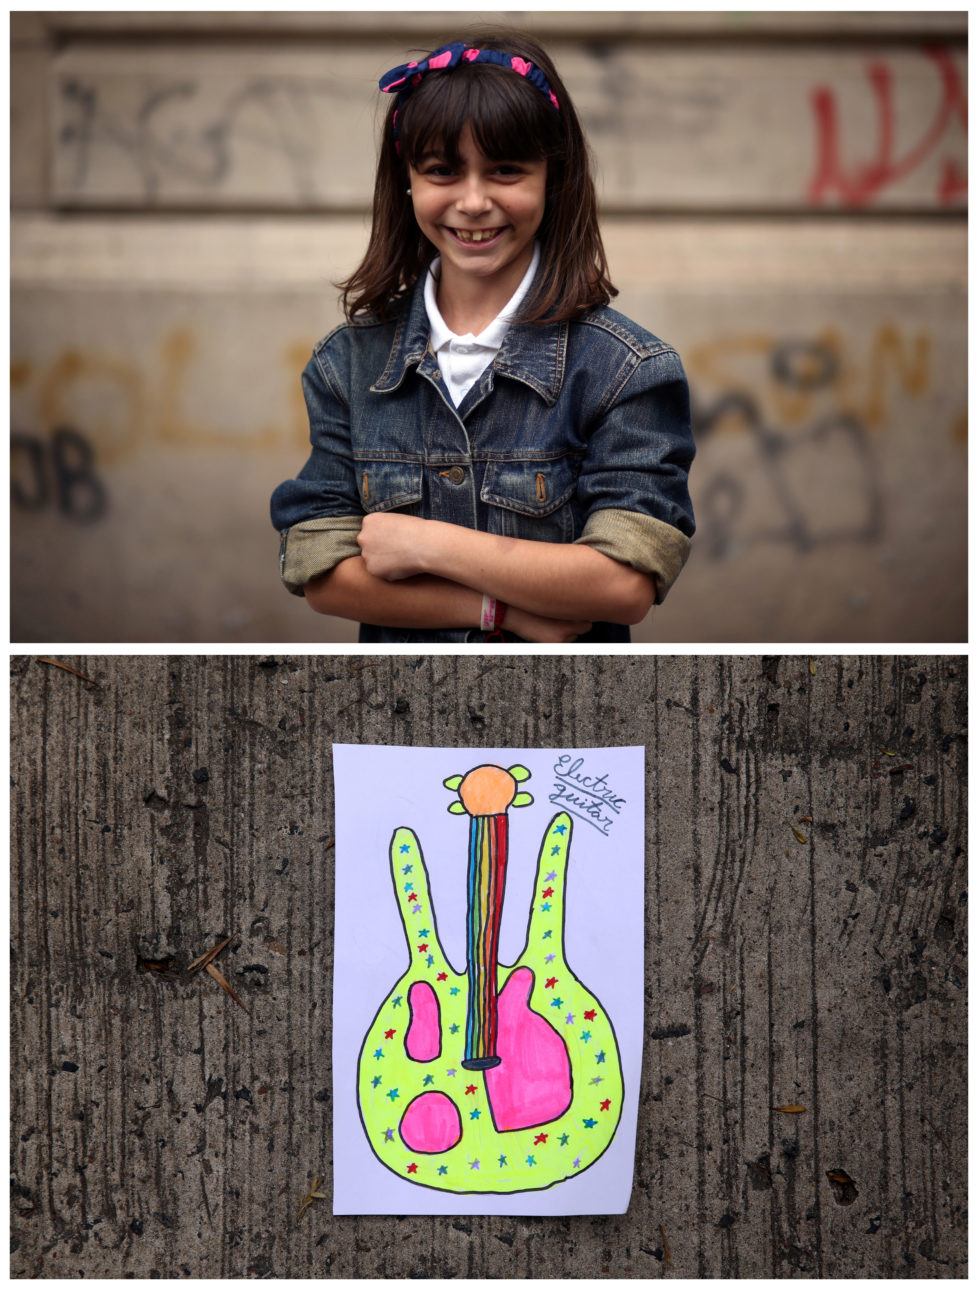 """A combination picture shows Morena Fay, 9, posing for a photograph (top) and her drawing of what she wants to get for Christmas from Santa, in Buenos Aires, Argentina, November 16, 2016. """"I want to ask Papa Noel (Santa Claus) to bring me an electric guitar this Christmas, because I love music and I've wanted one for a long time,"""" Morena said. Reuters photographers around the world asked children to draw what they wanted to receive from Santa for Christmas. REUTERS/Marcos Brindicci SEARCH """"CHRISTMAS WISHES"""" FOR THIS STORY. SEARCH """"WIDER IMAGE"""" FOR ALL STORIES. - RTSV37B"""